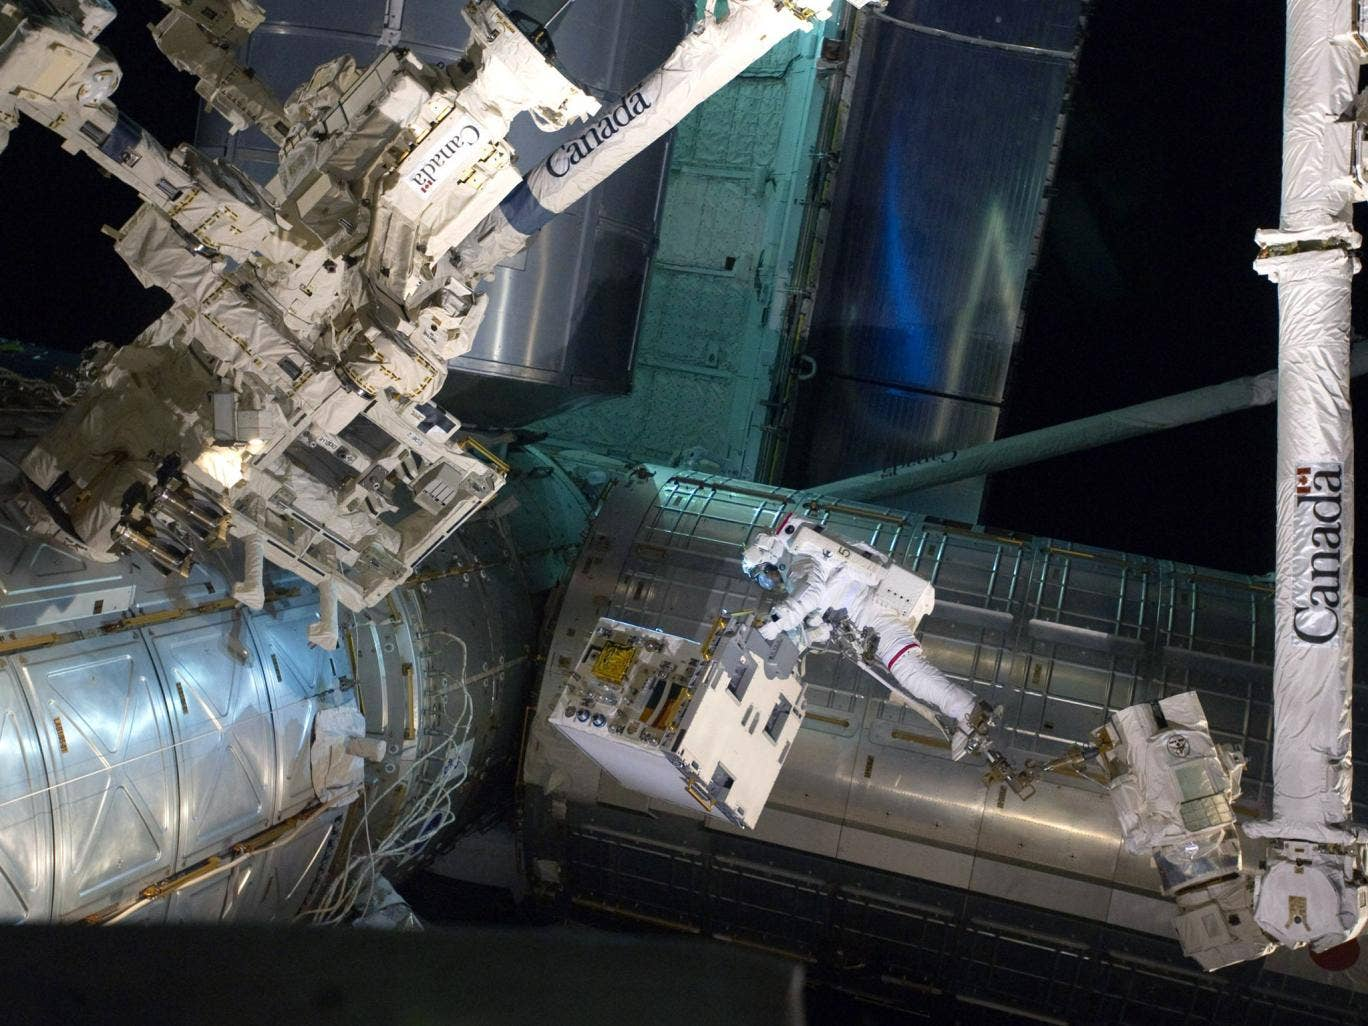 American crews have been transported to the International Space Station by Soyuz rockets since 2011